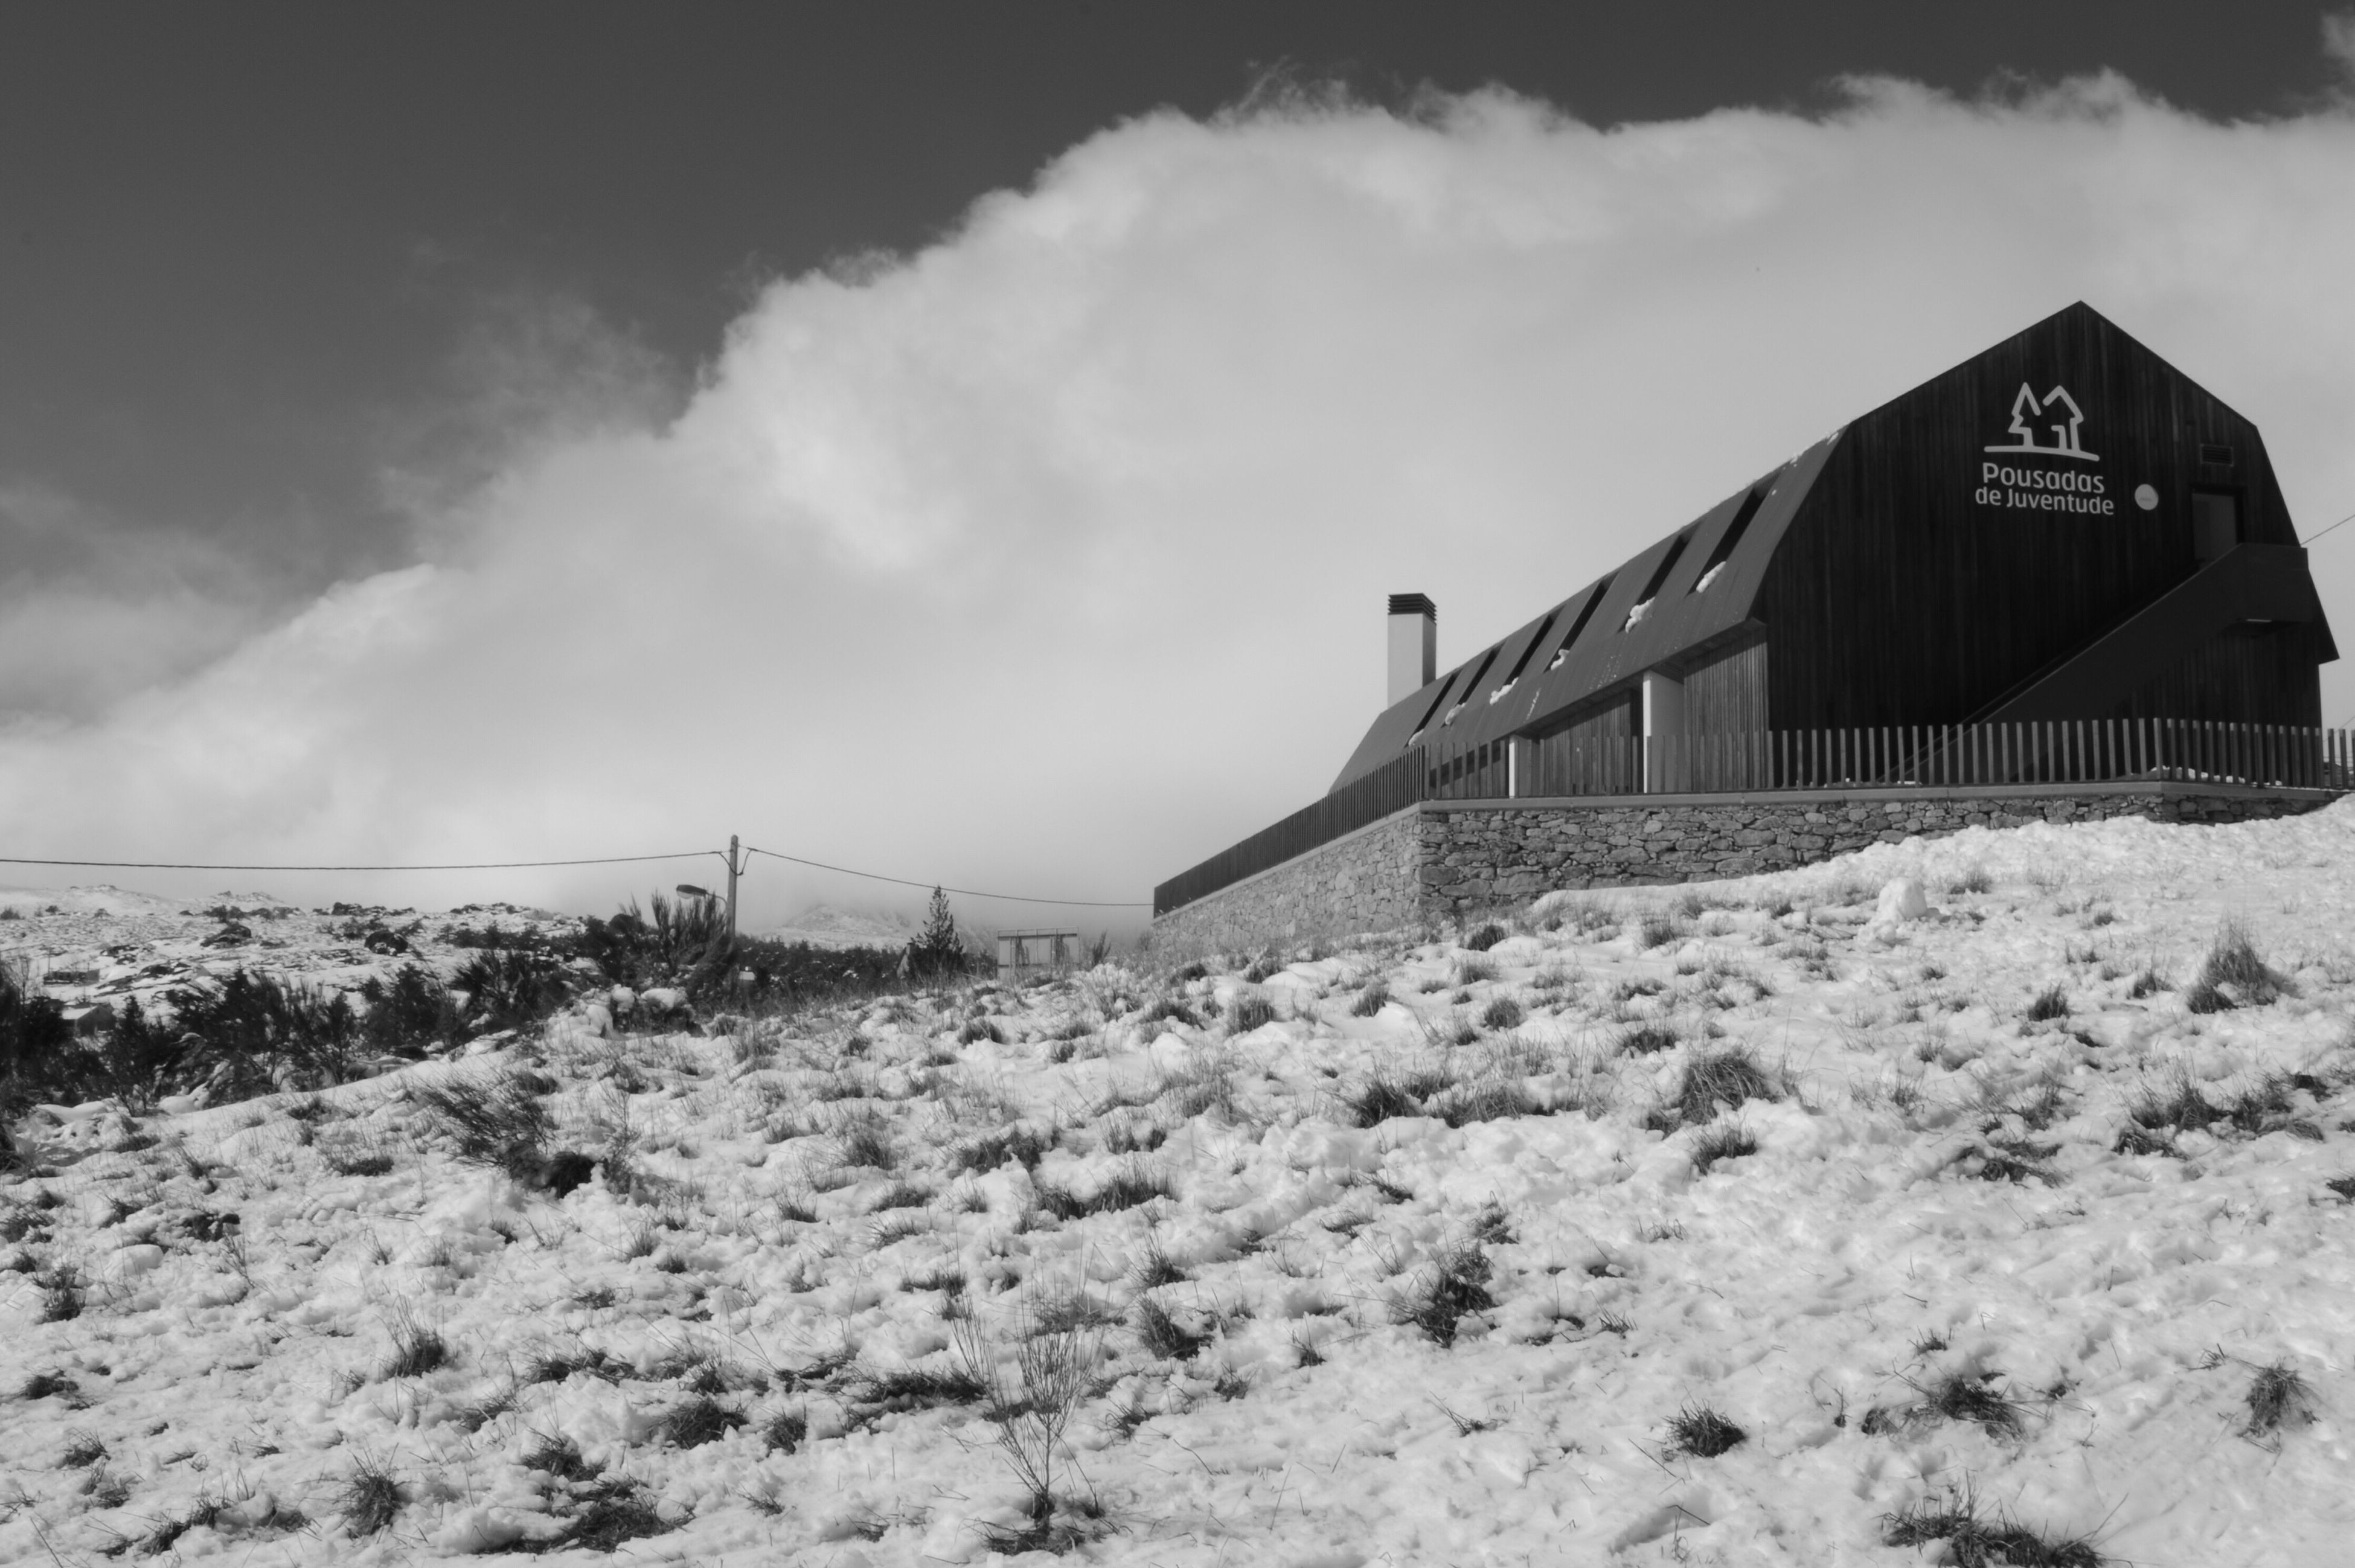 sky, cloud - sky, built structure, weather, beach, architecture, snow, cloudy, cloud, sand, nature, landscape, winter, house, building exterior, tranquil scene, tranquility, cold temperature, day, field